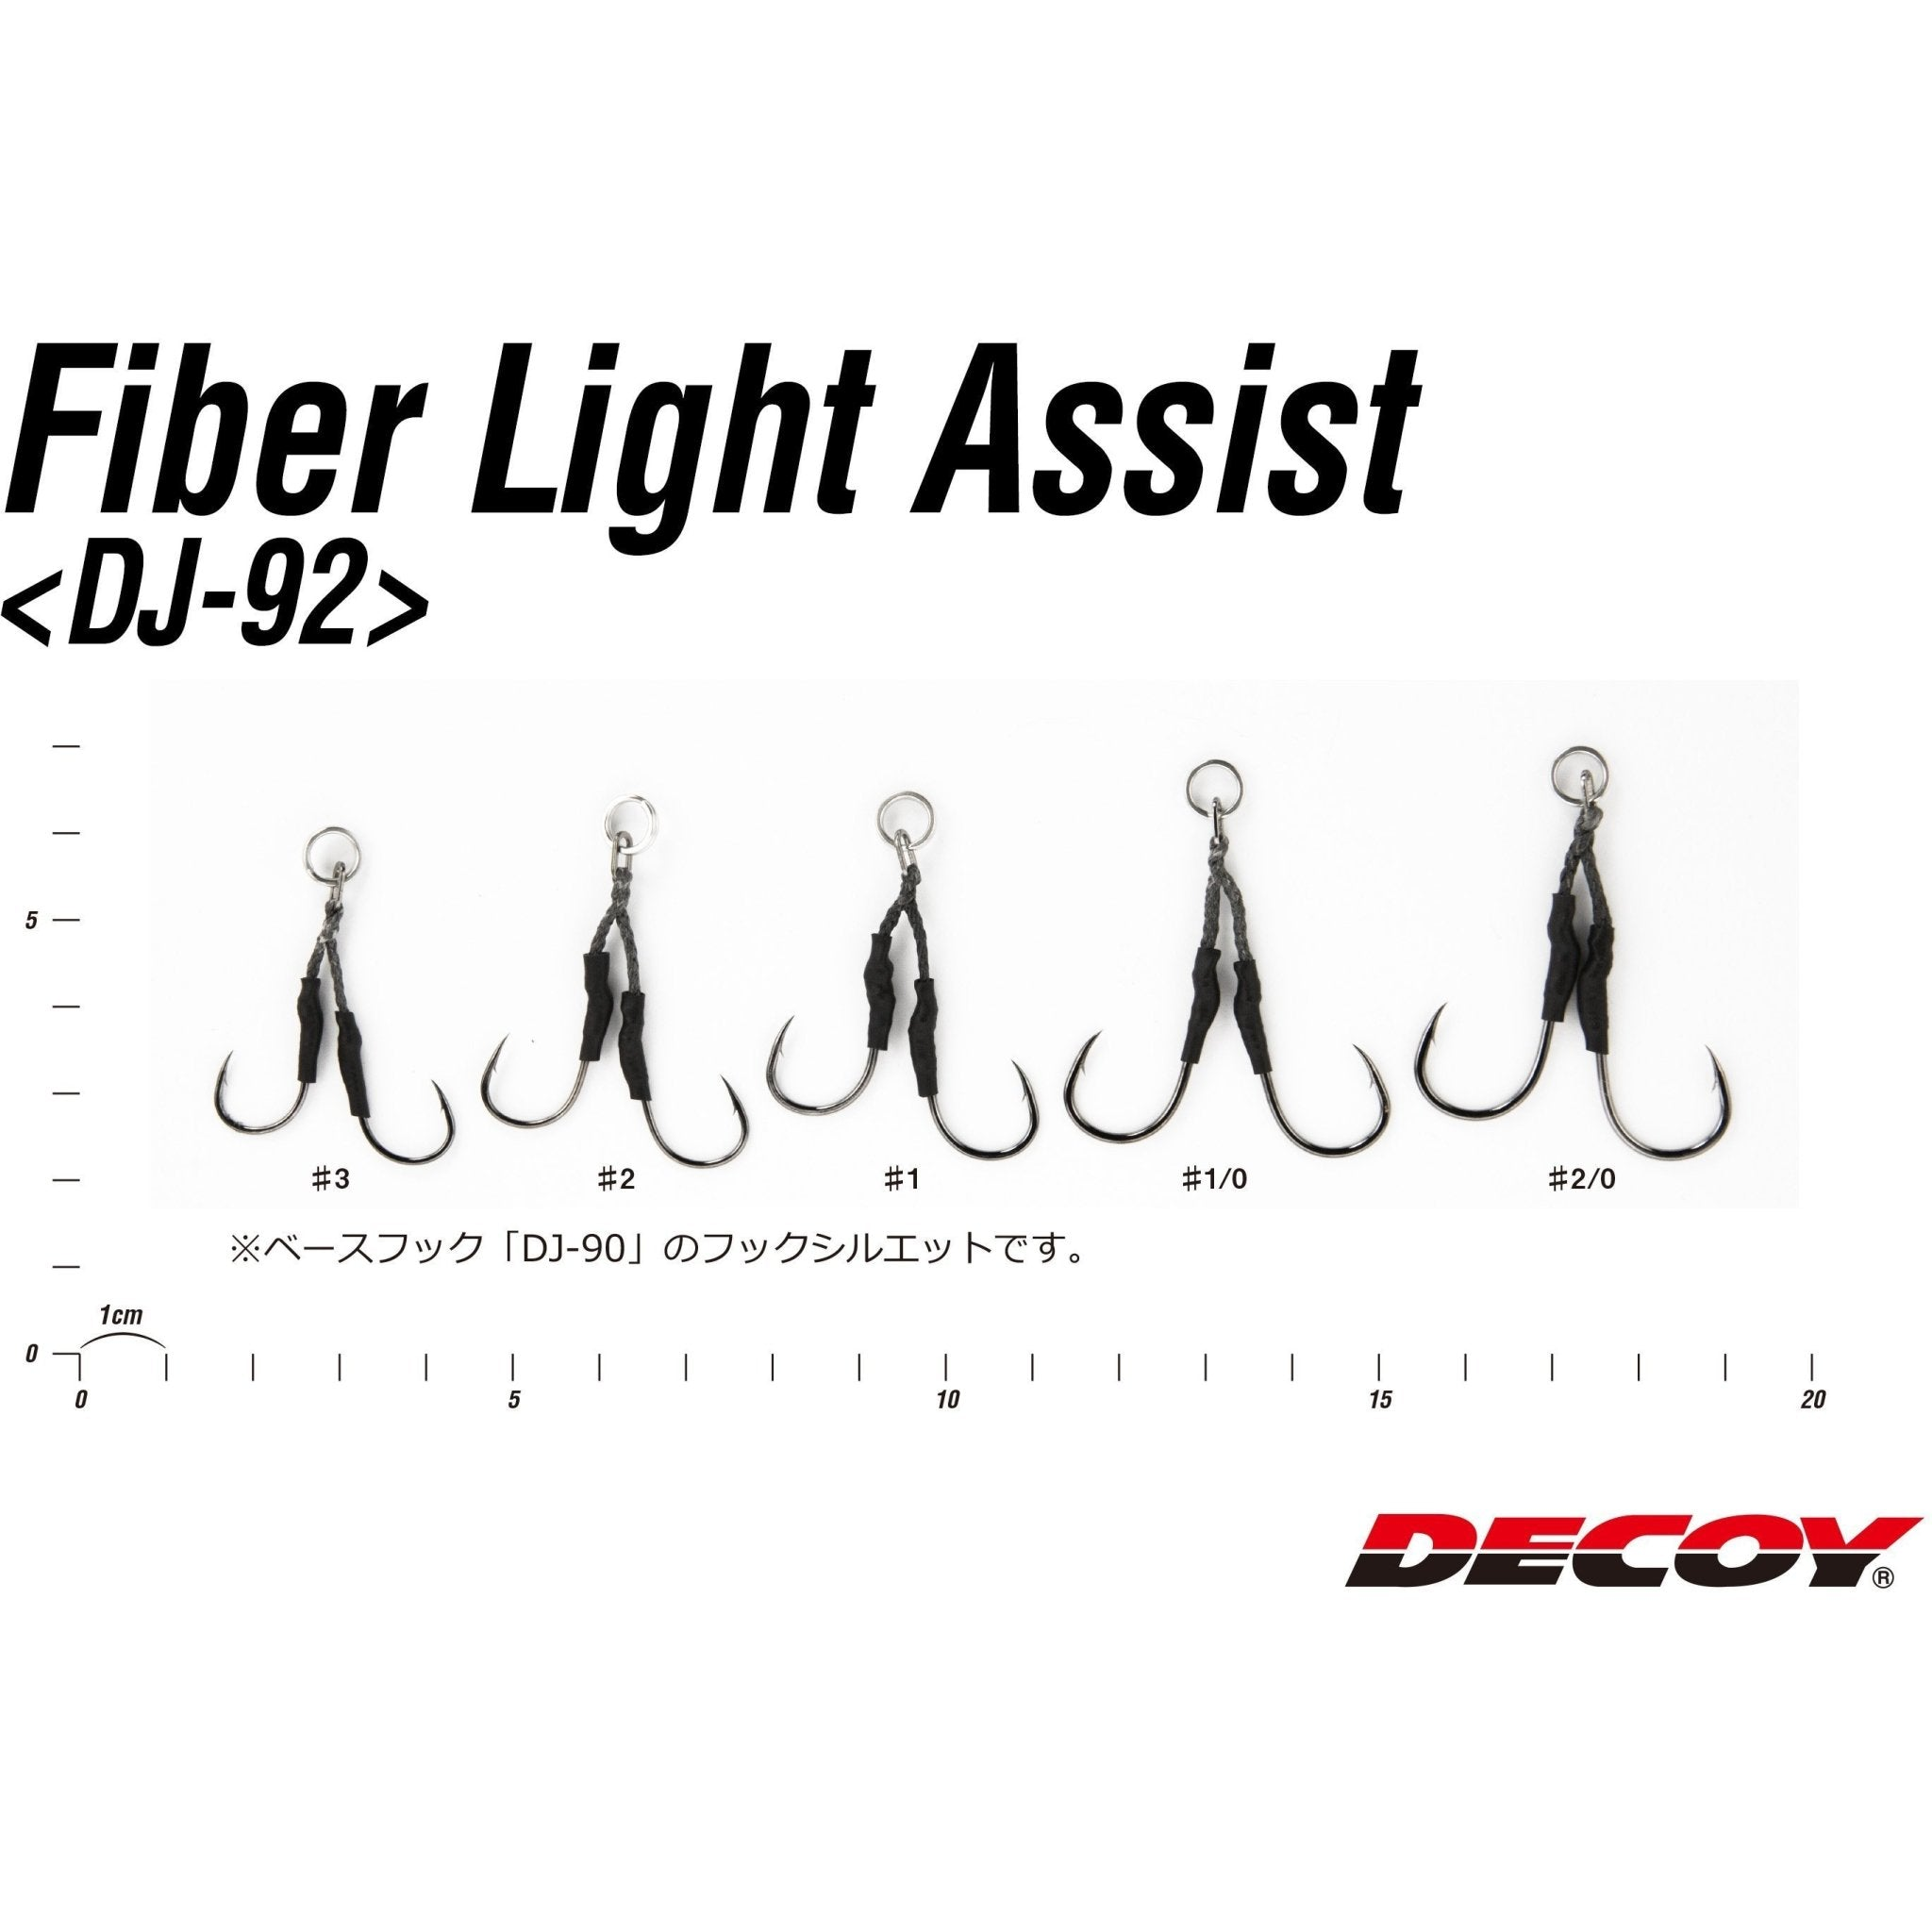 Assist Hook - Decoy - DJ-92 Fiber Light Assist - The Fishermans Hut